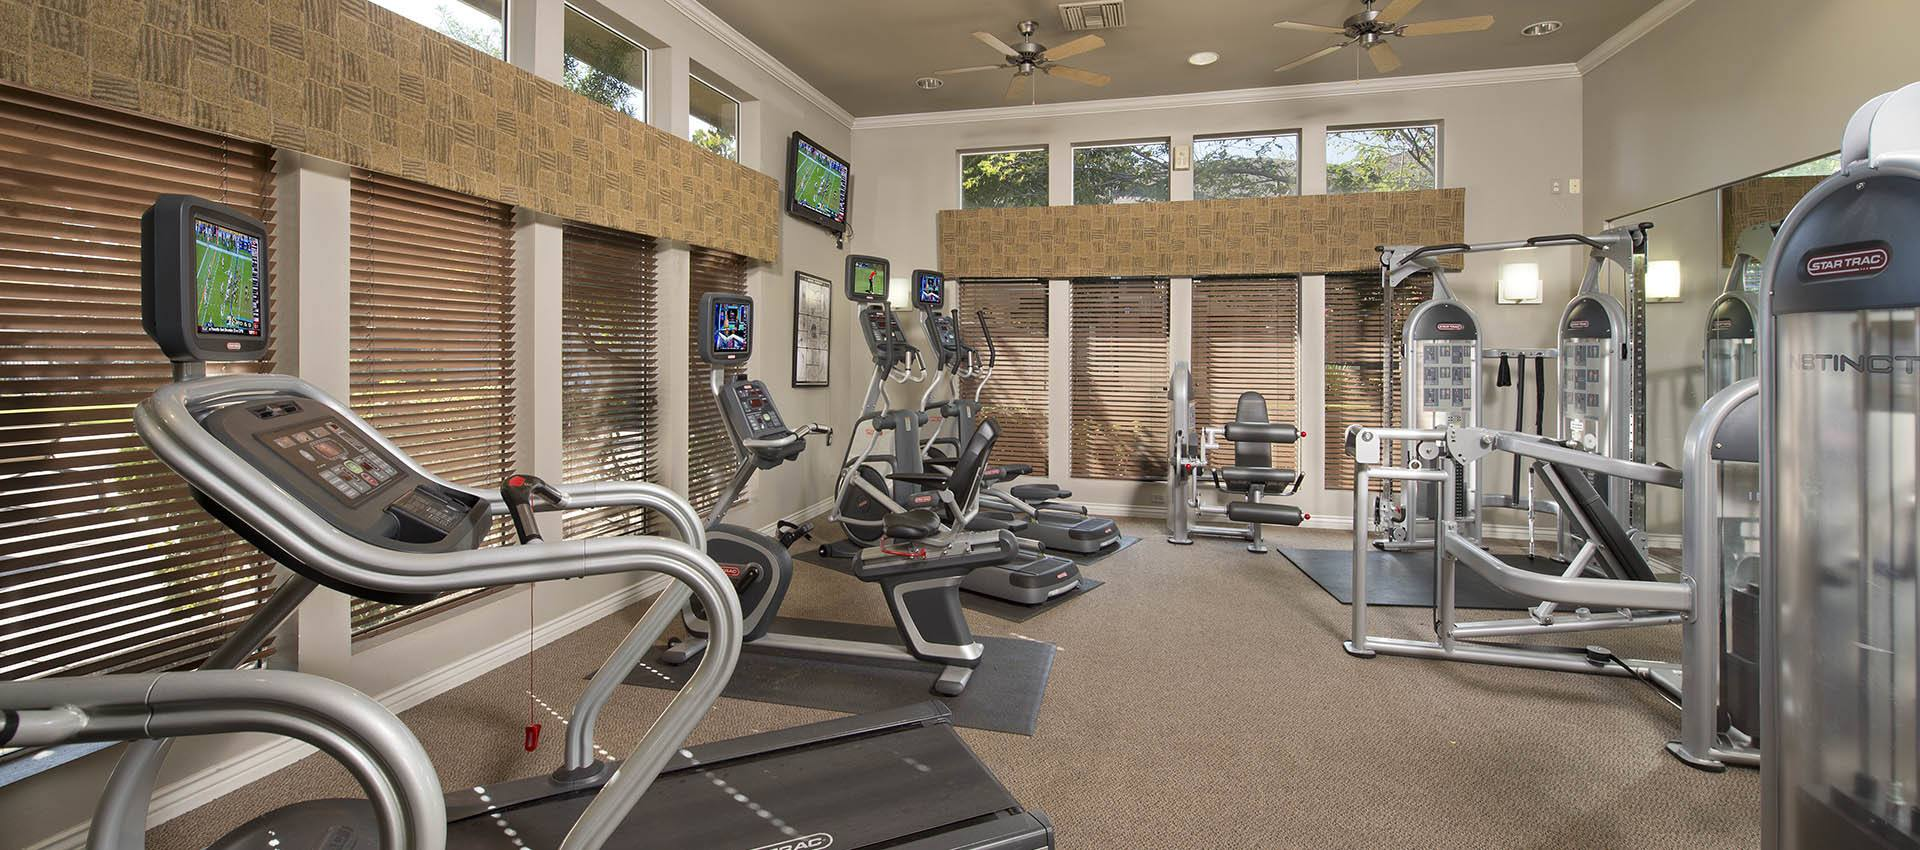 Fitness Center at Cross Pointe Apartment Homes in Antioch